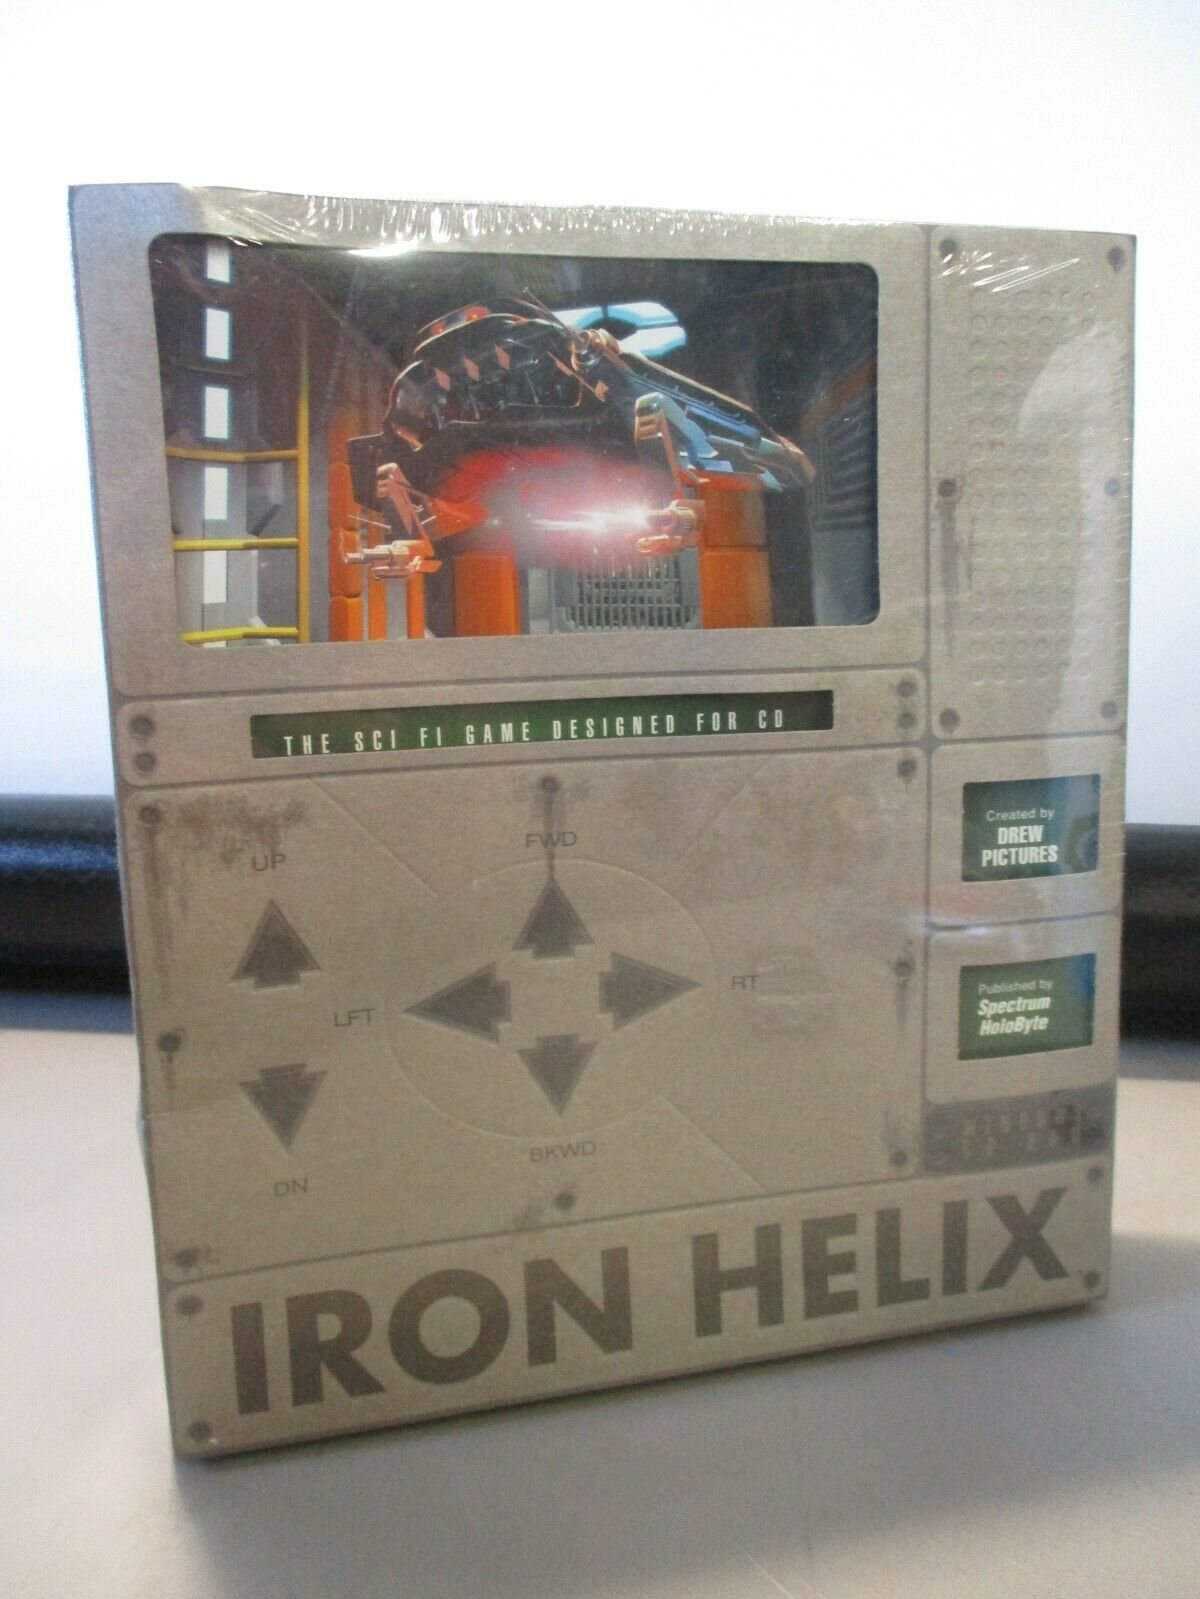 Computer Games - VINTAGE PC COMPUTER GAME CD ROM IRON HELIX SEALED GAME IN BOX